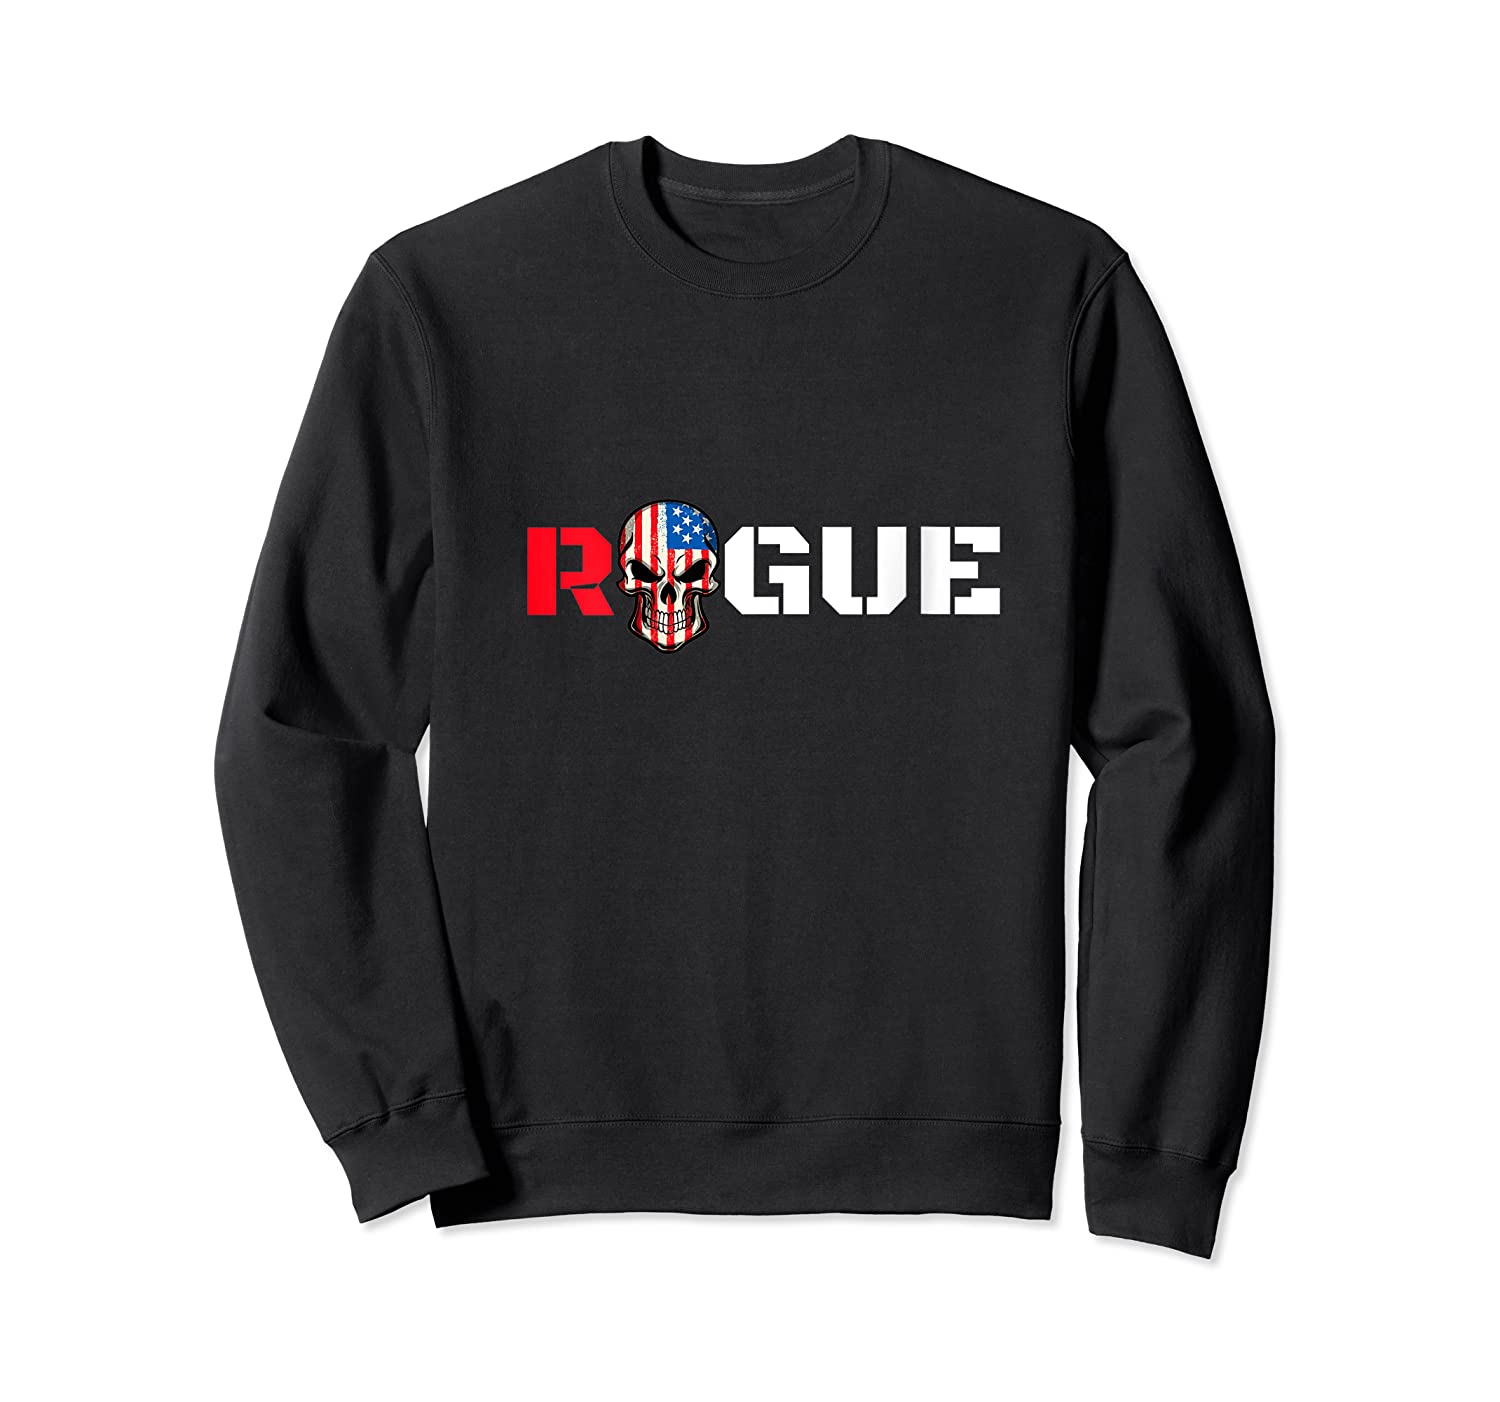 Rogue Life Armed Forces Military Gaming Gym Bad Boy Tee Army T-shirt Crewneck Sweater